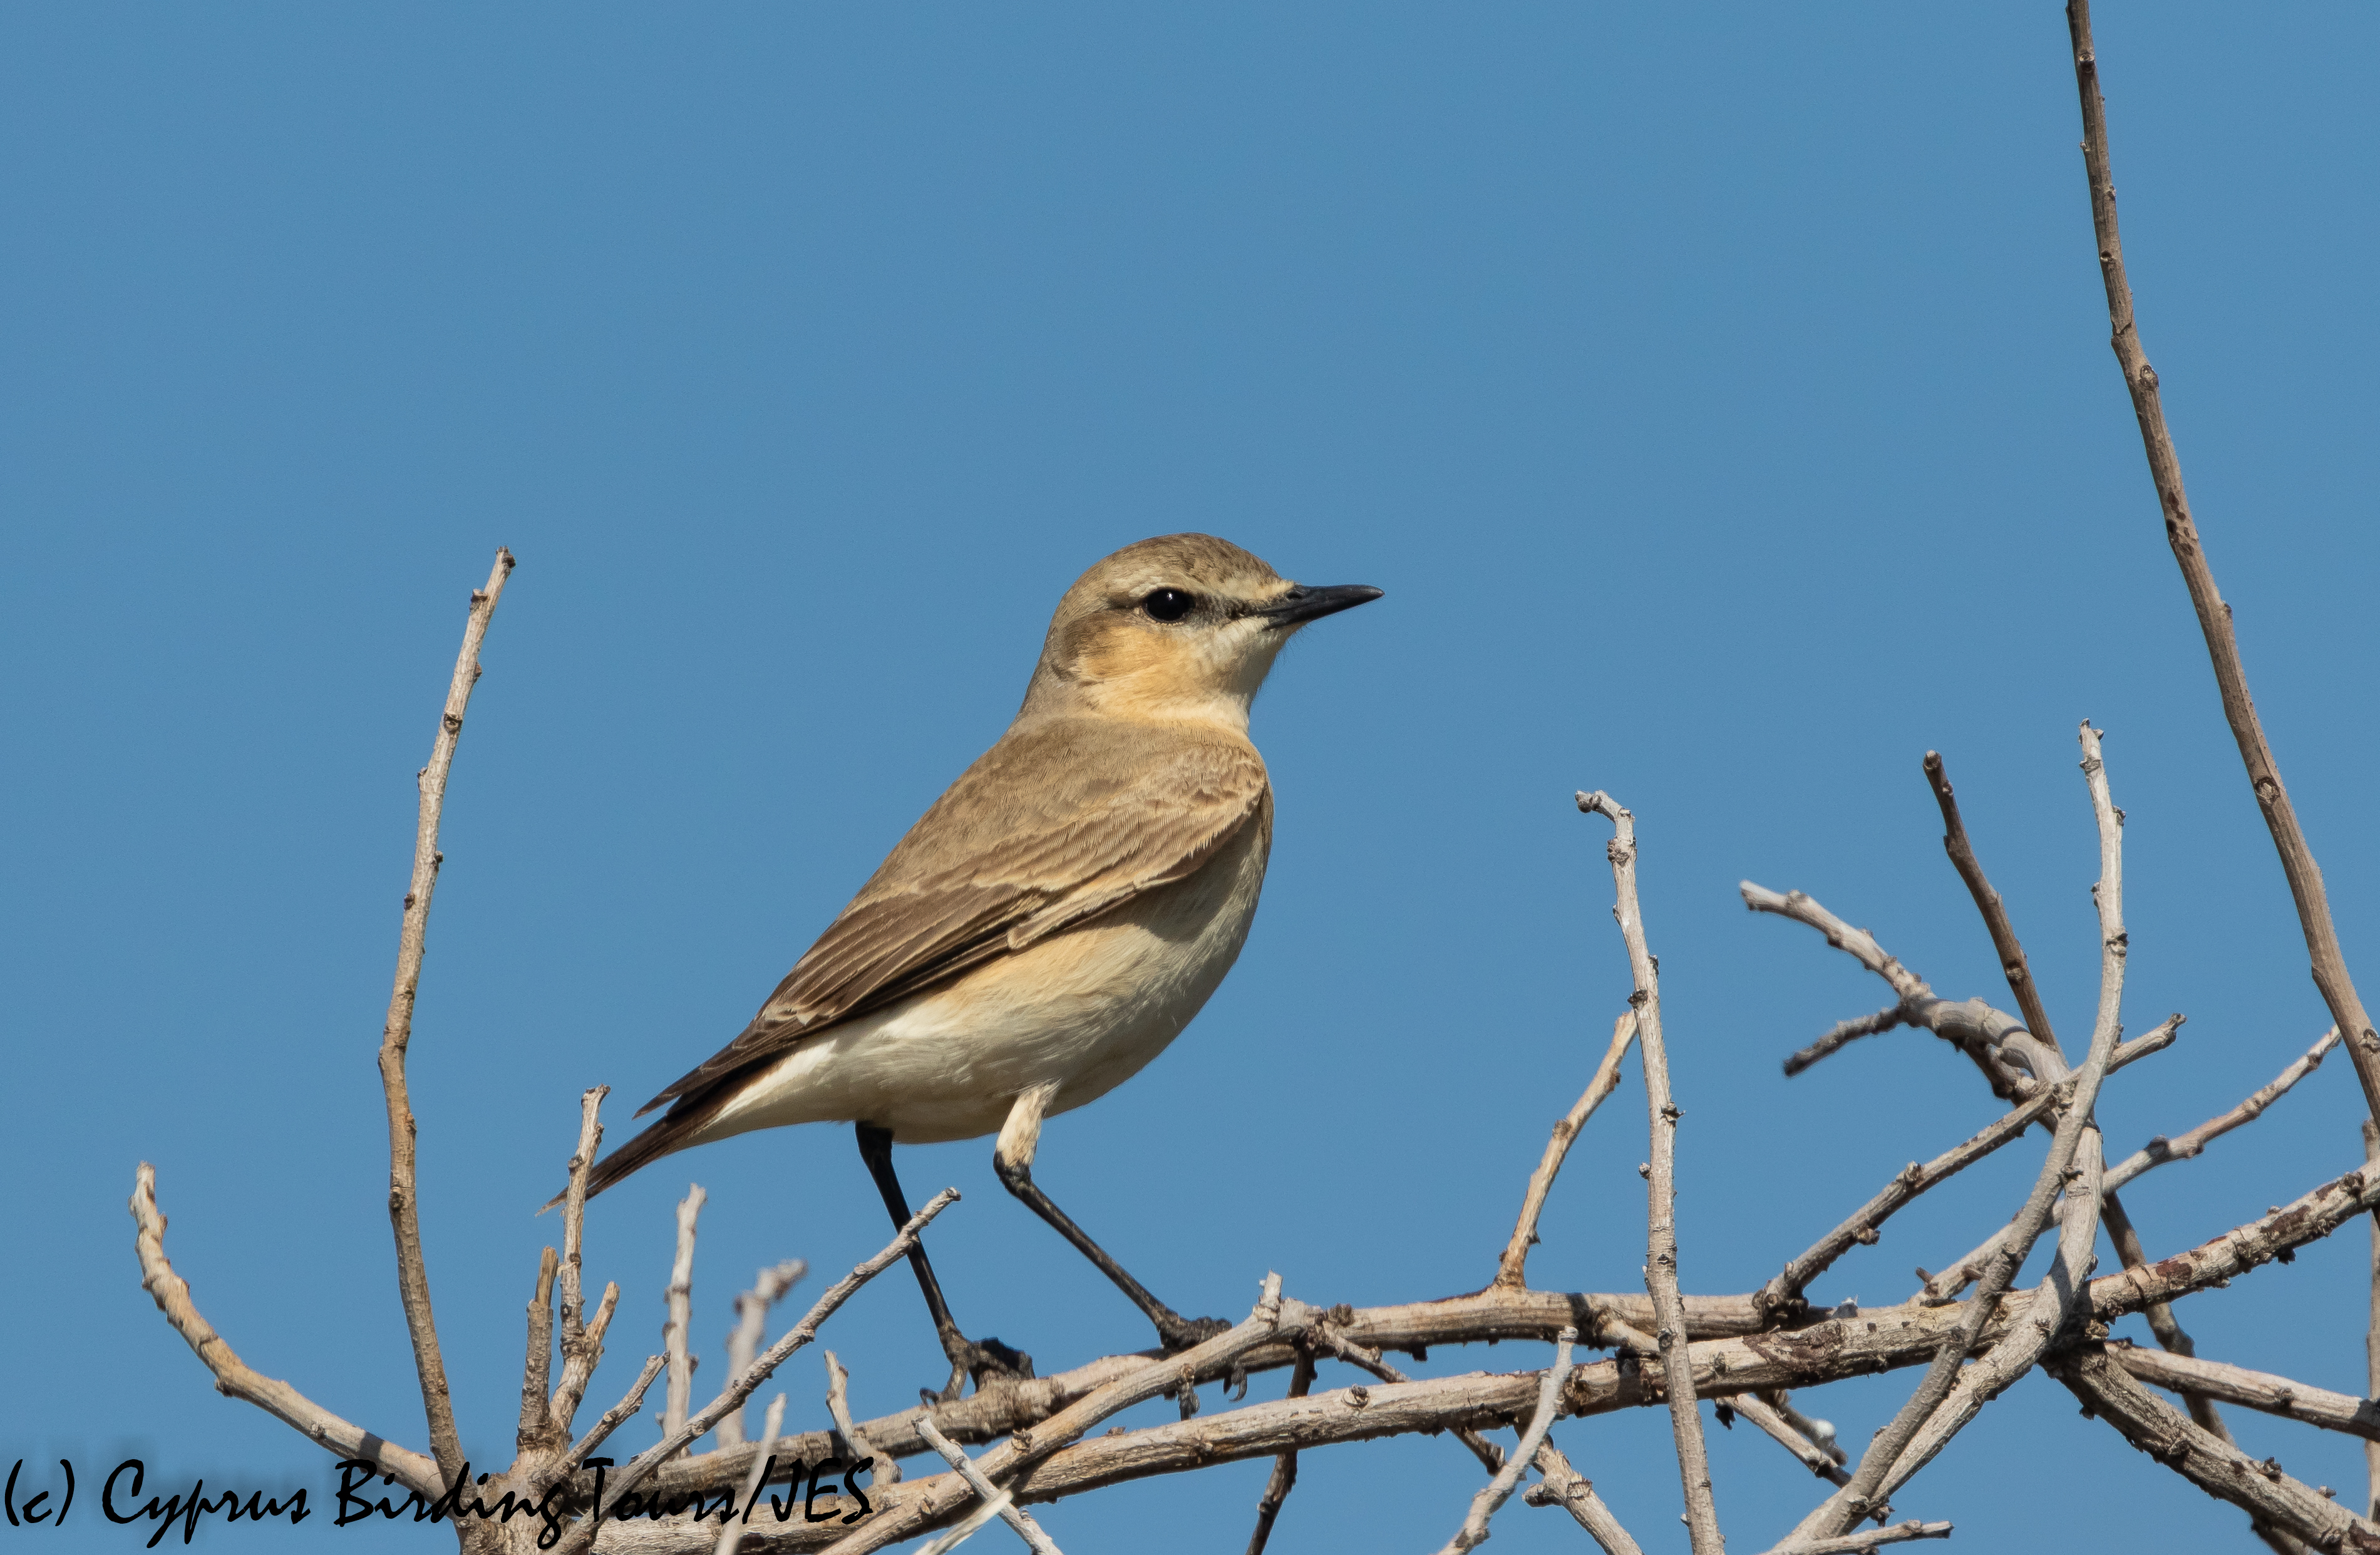 Isabelline Wheatear, Petounta 8th March 2020 (c) Cyprus Birding Tours